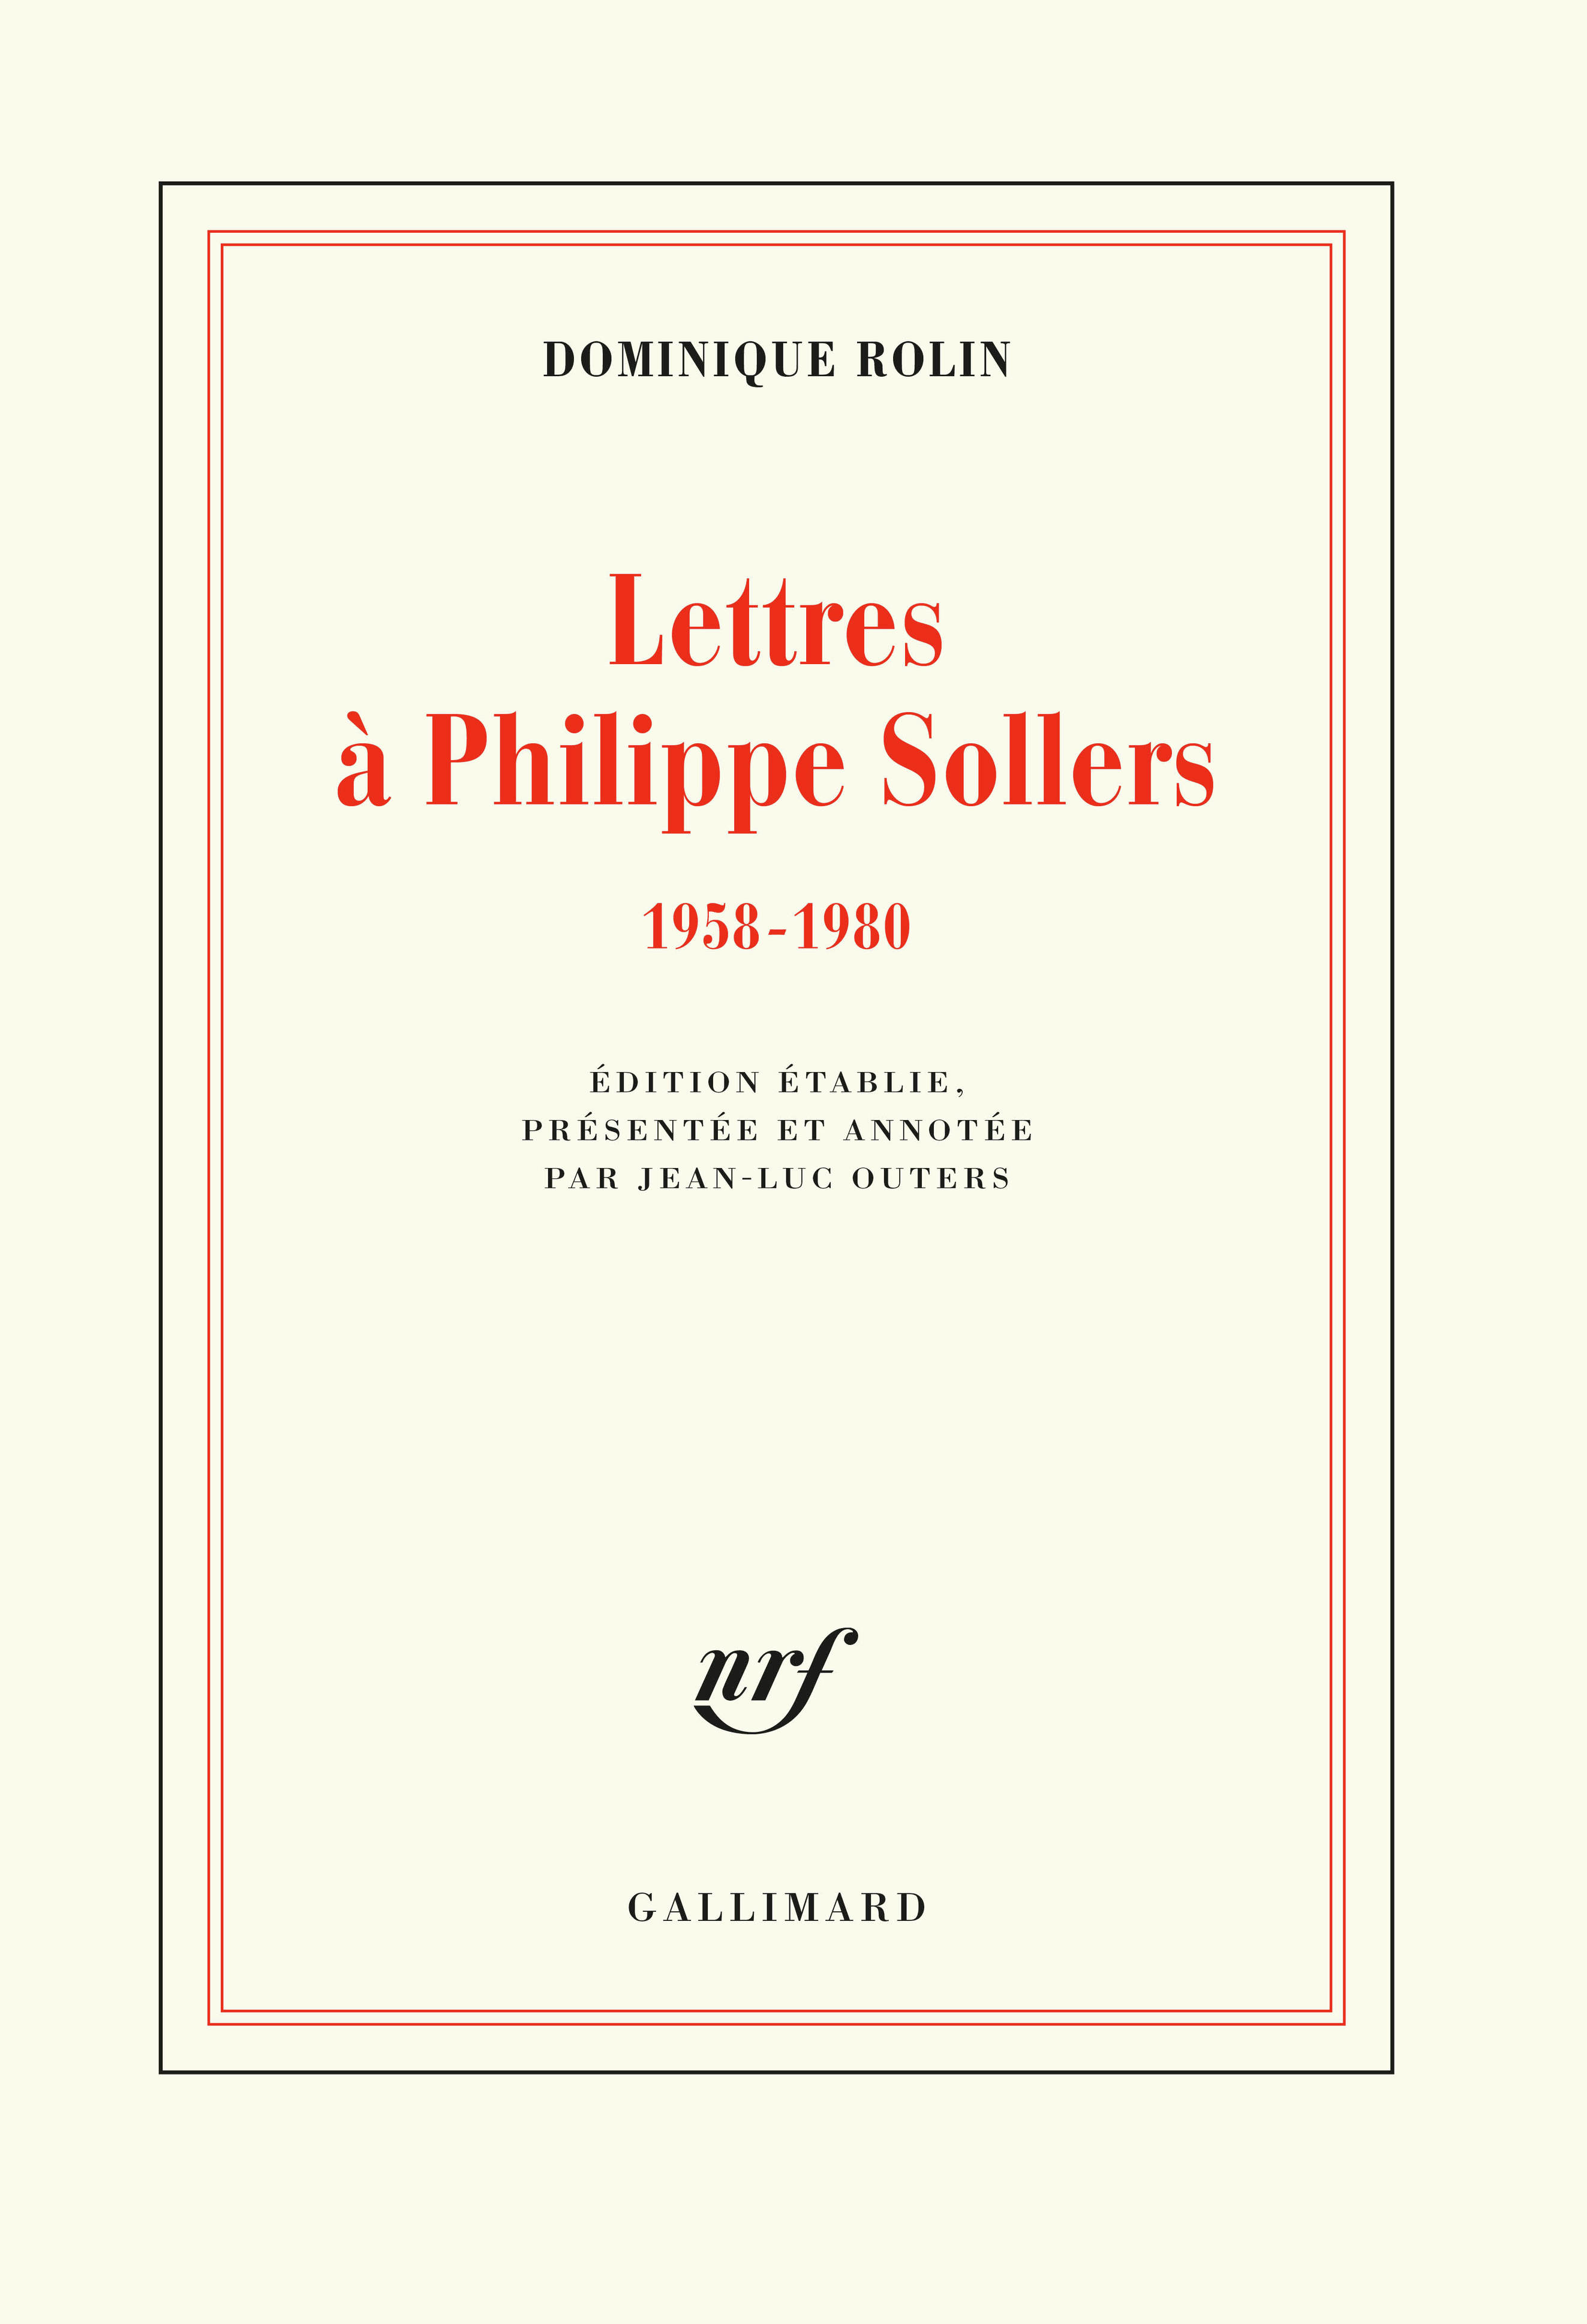 D. Rollin, Lettres à Philippe Sollers (1958-1980)